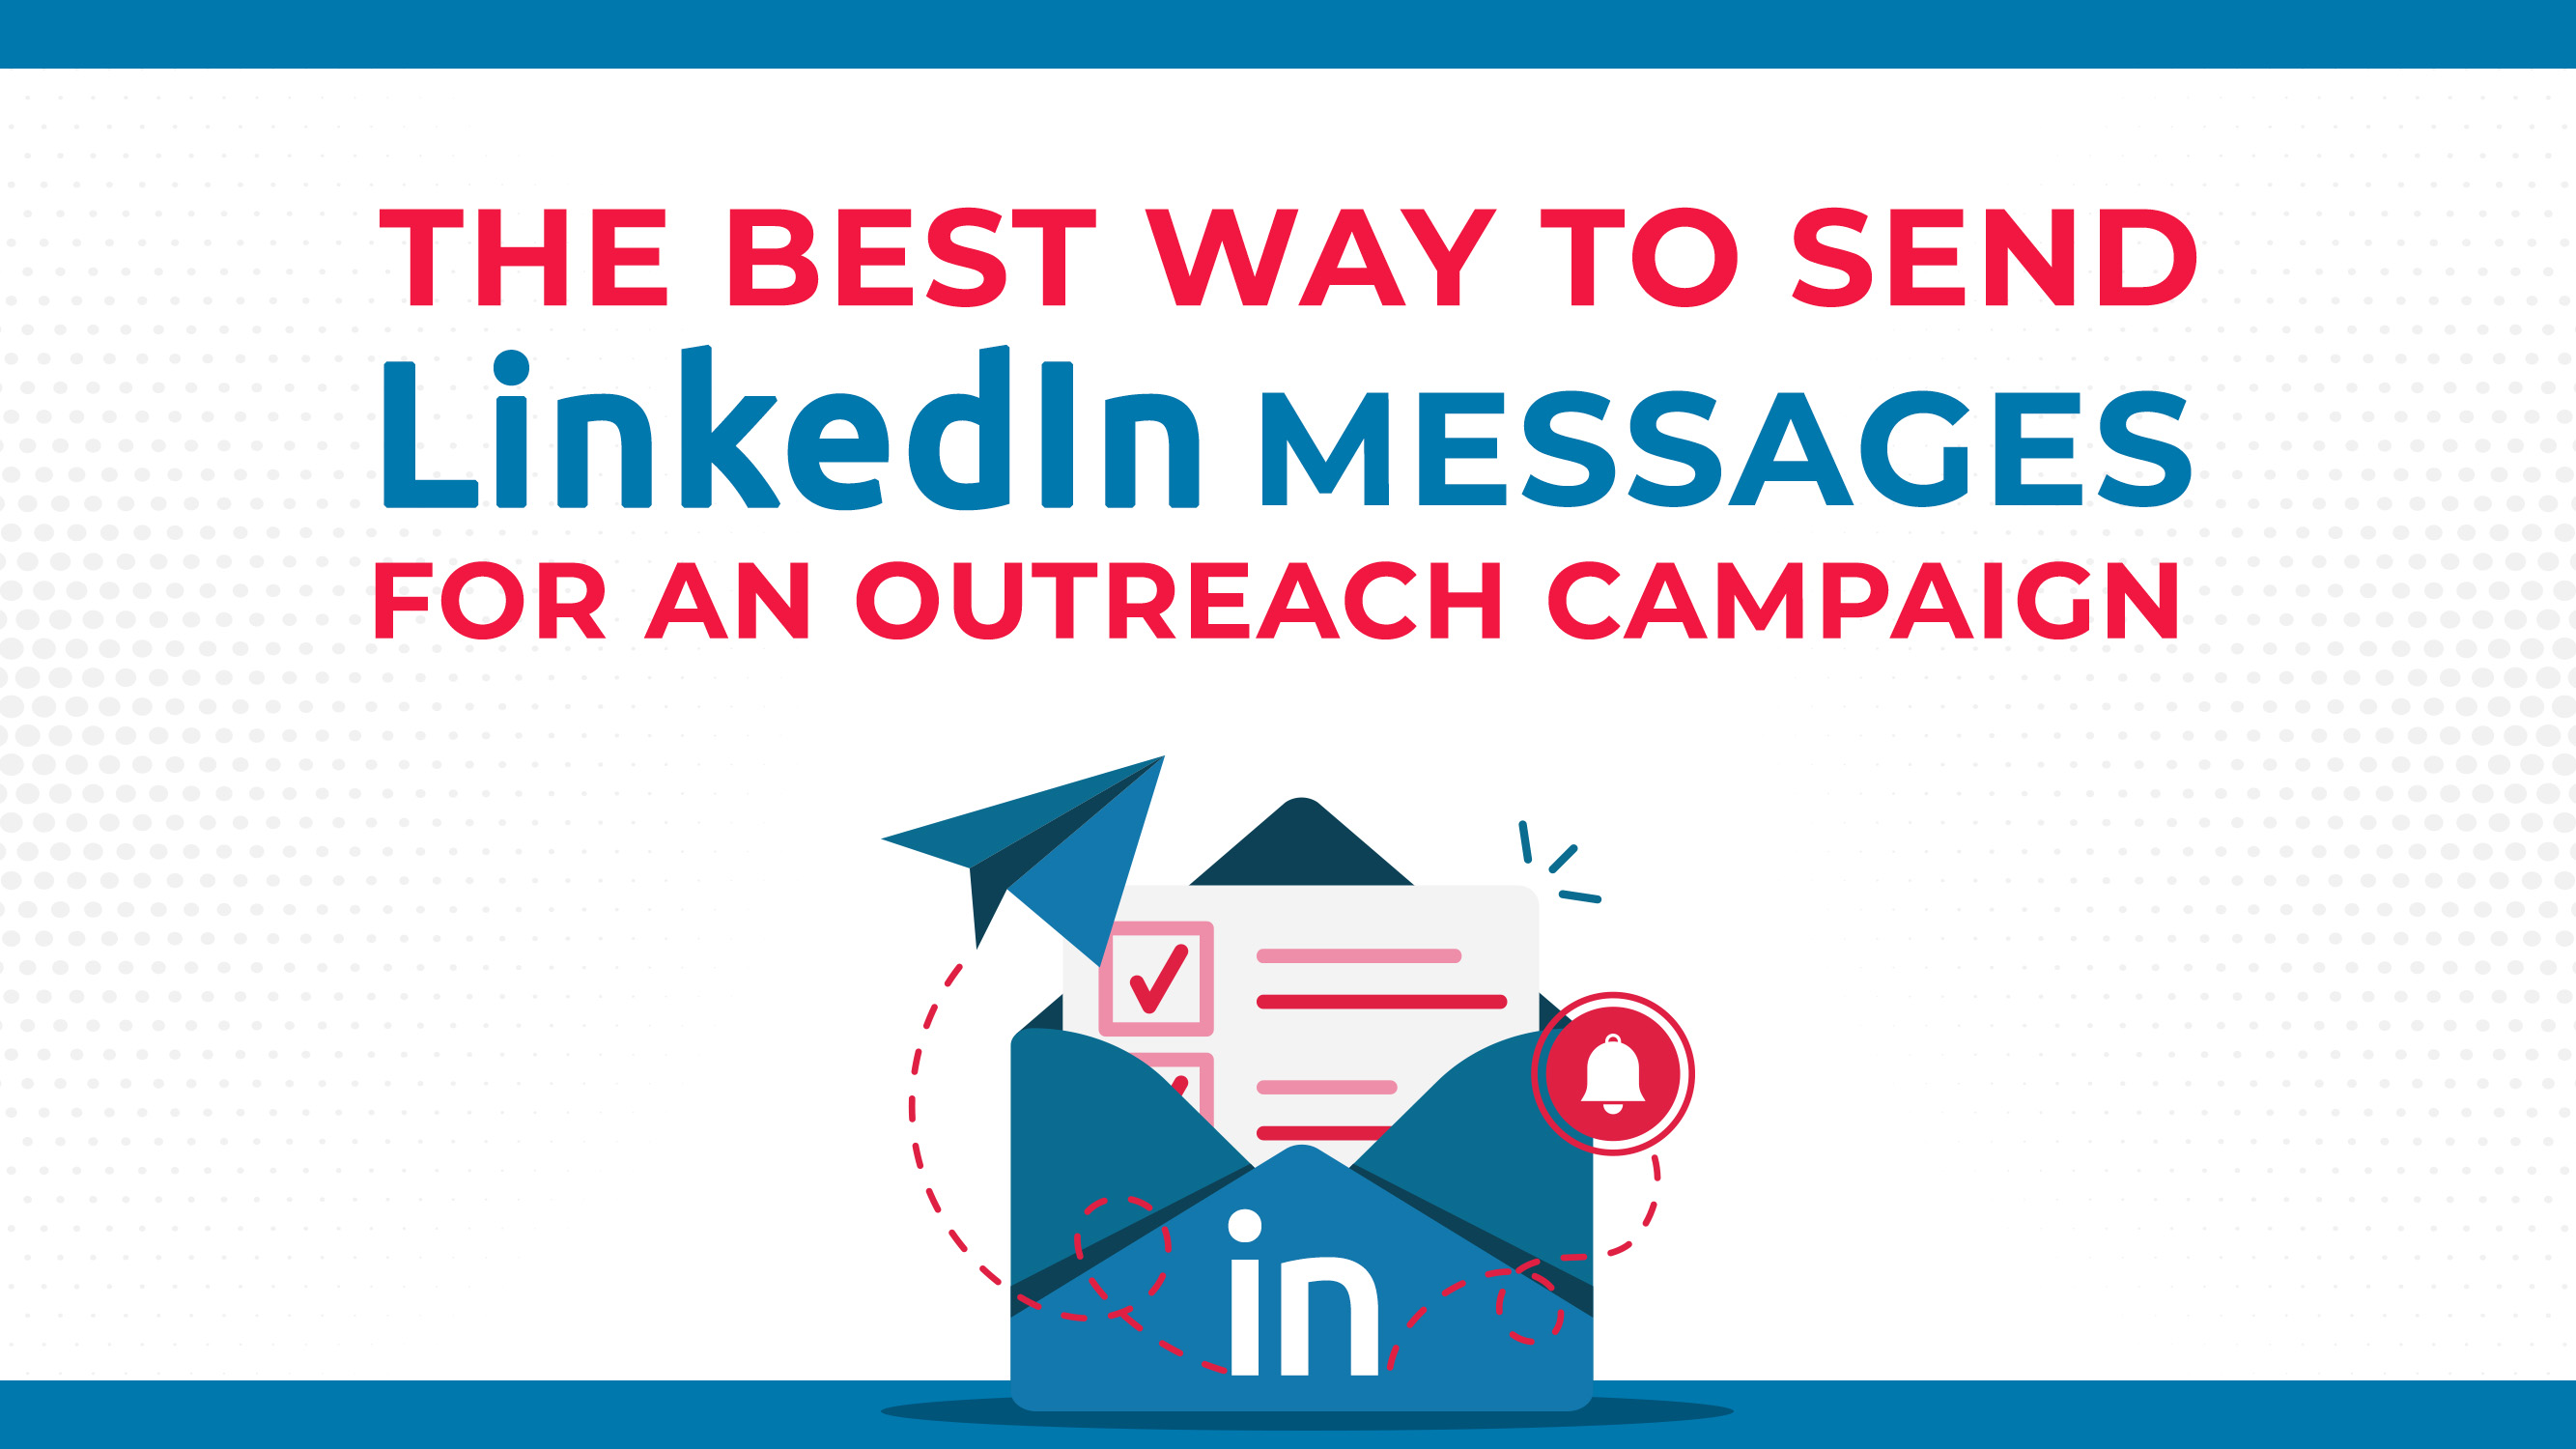 The Best Way To Send LinkedIn Messages For An Outreach Campaign